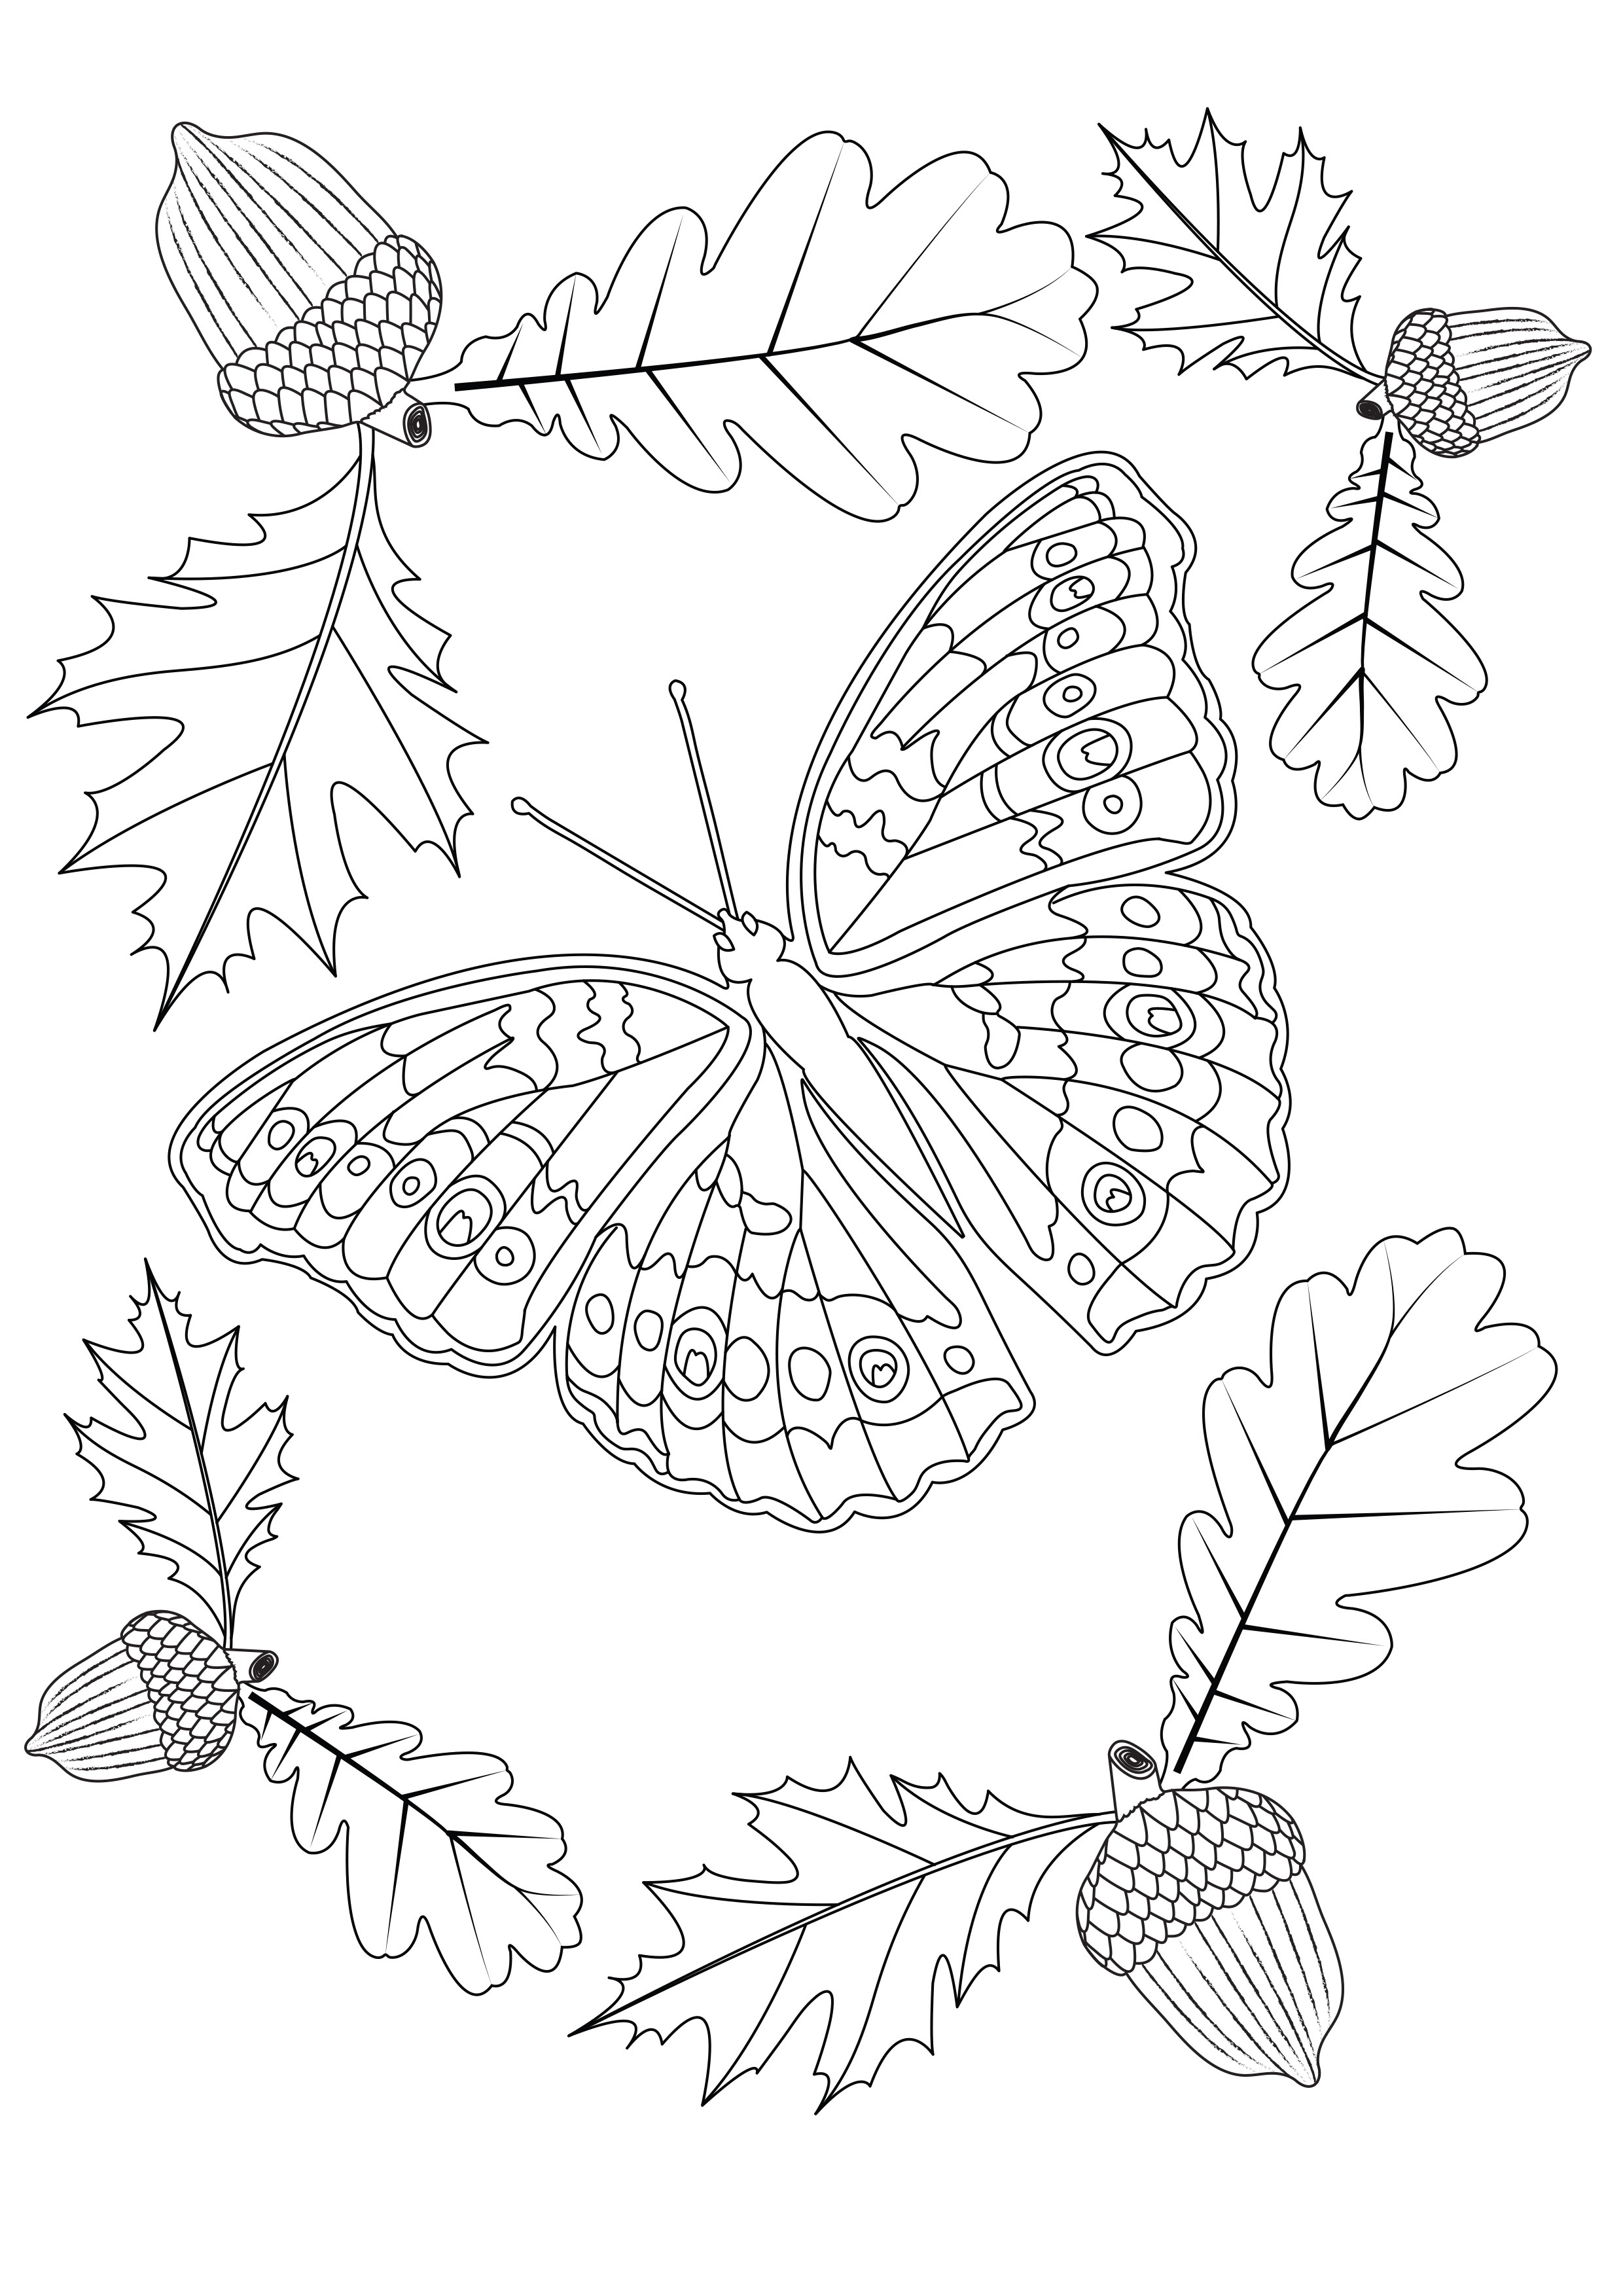 Butterflies for kids - Butterflies Kids Coloring Pages